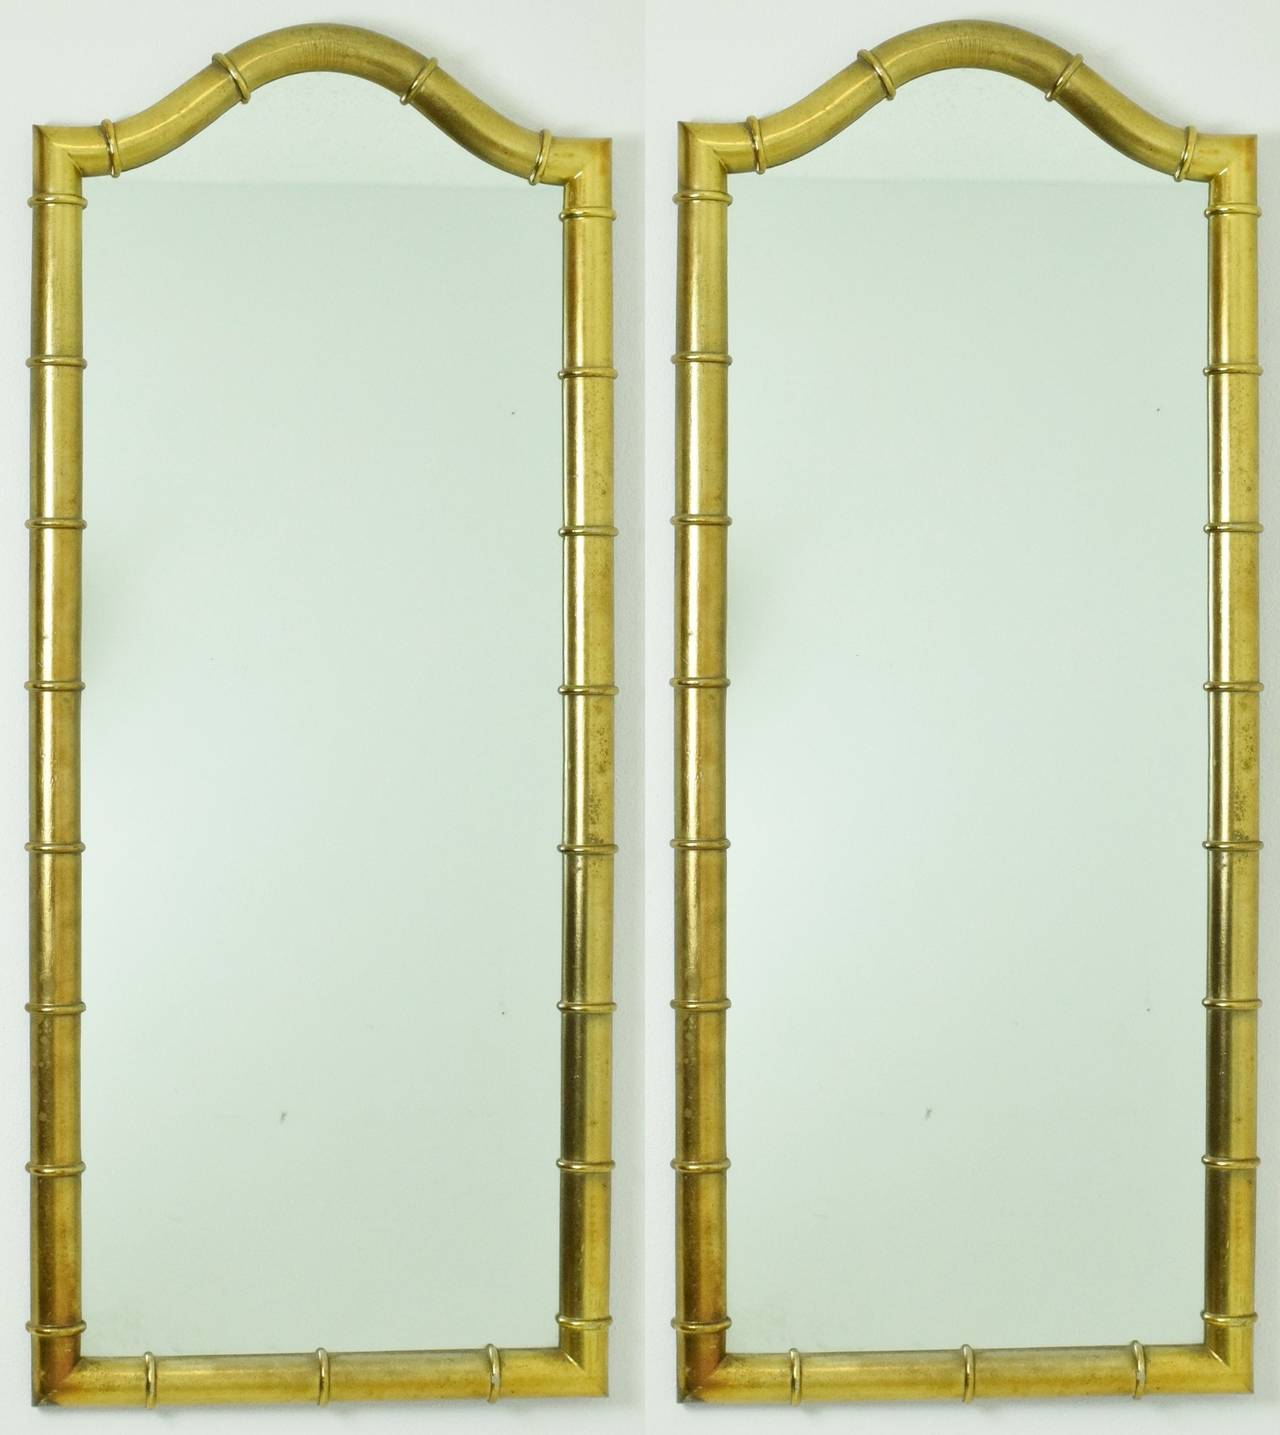 Pair of Drexel Mirrors in Faux Bamboo with Gold Leaf Finish For Sale ...